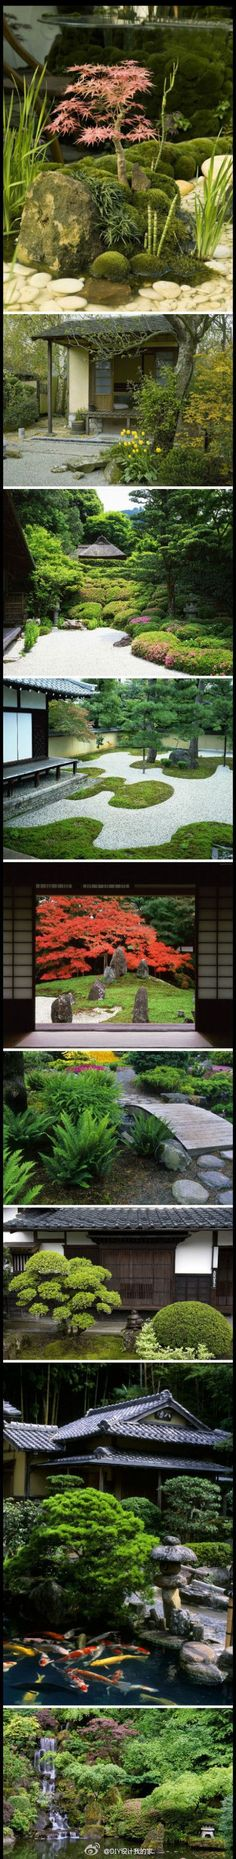 The japanese garden. complexity & simplicity at the same time Garden Garden backyard Garden design Garden ideas Garden plants Japanese Garden Style, Japanese Landscape, Chinese Garden, Japanese Architecture, Japanese Gardens, Japanese Plants, Dream Garden, Garden Art, Garden Plants